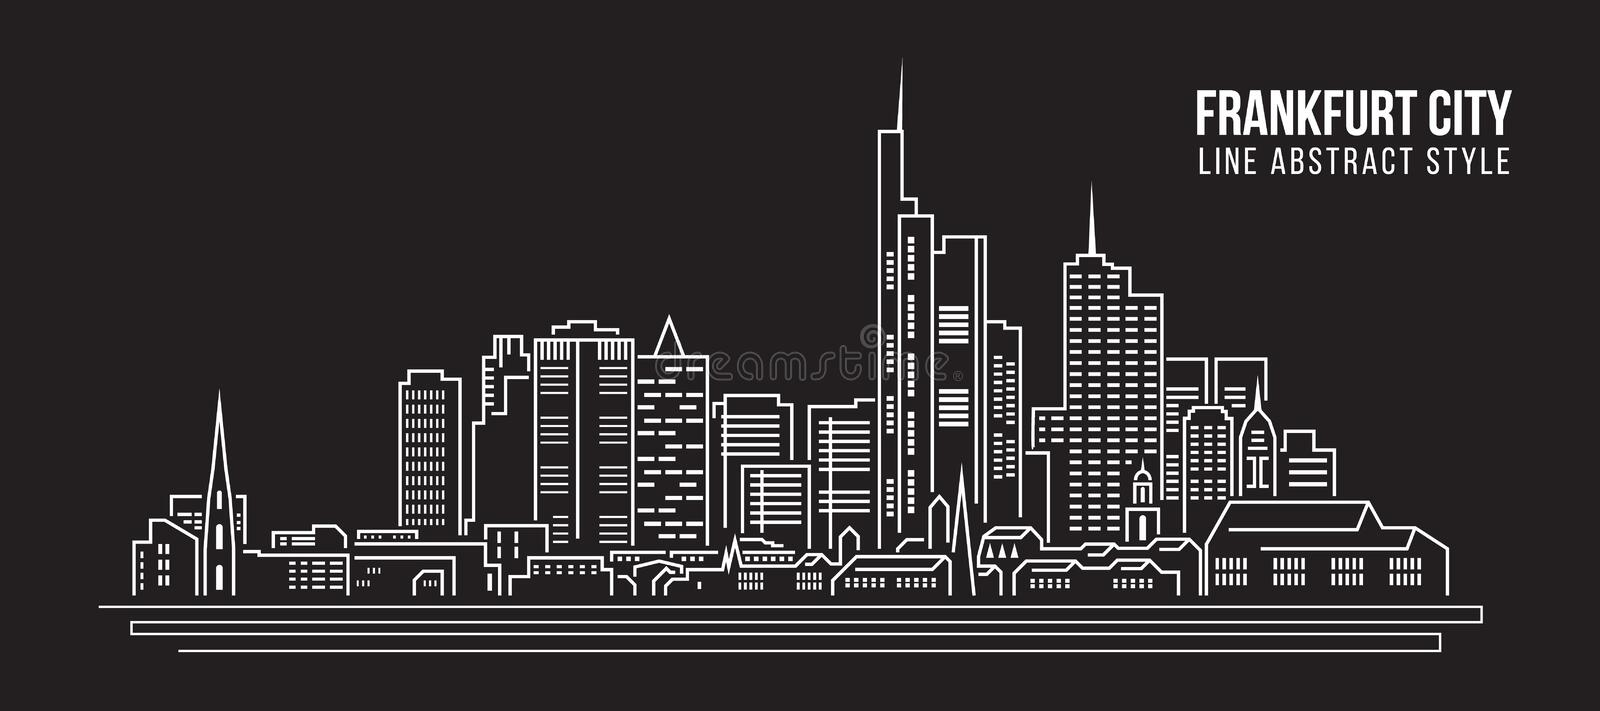 Cityscape Building Line art Vector Illustration design - frankfurt city stock illustration